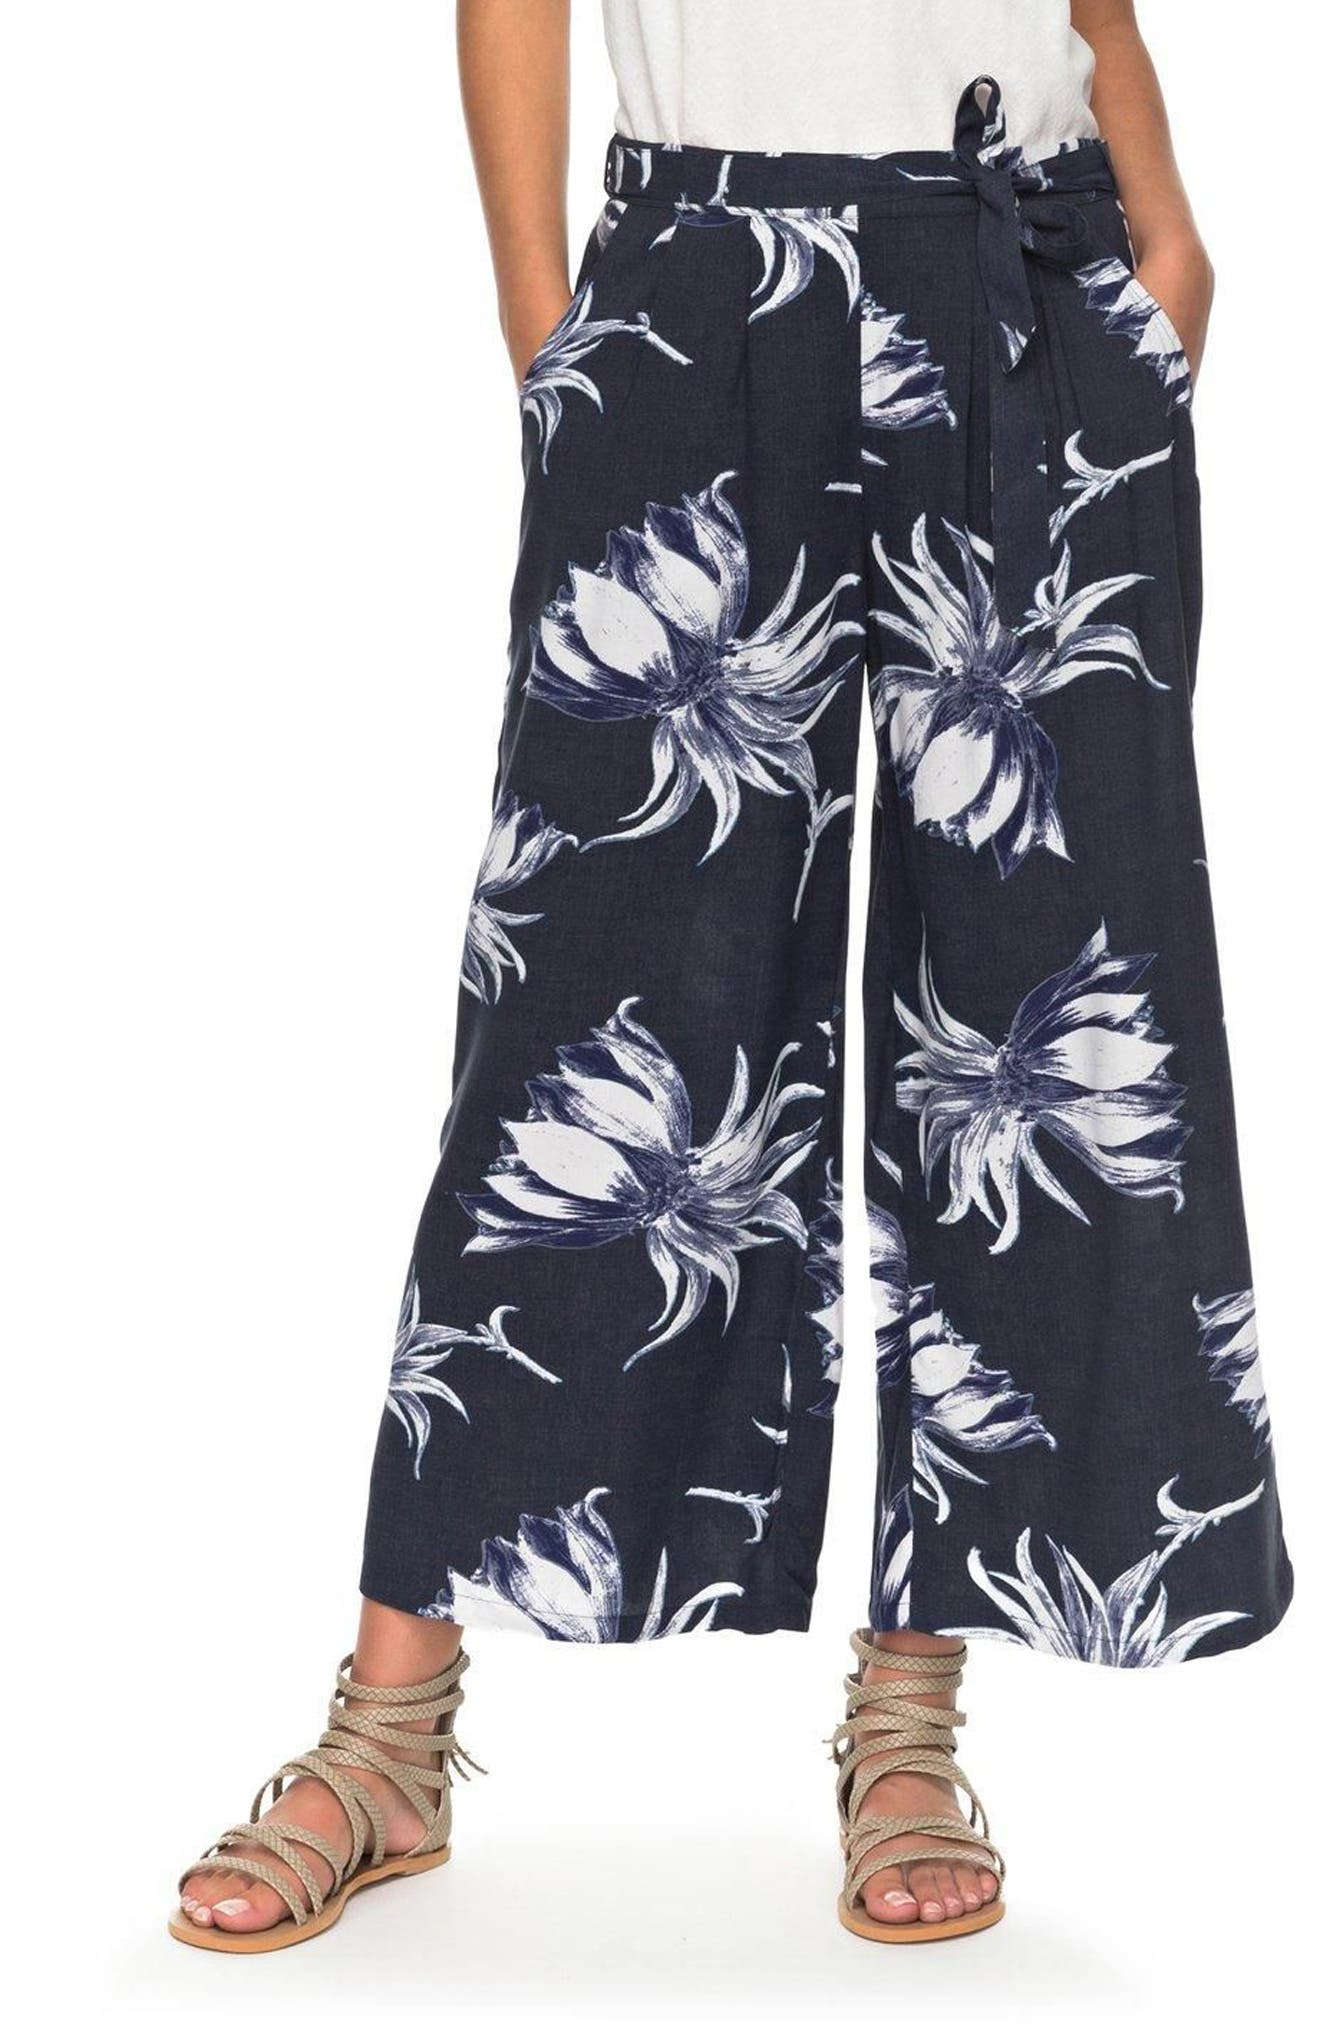 Alternate Image 1 Selected - Roxy Ready Beachy Vibes Print Culottes